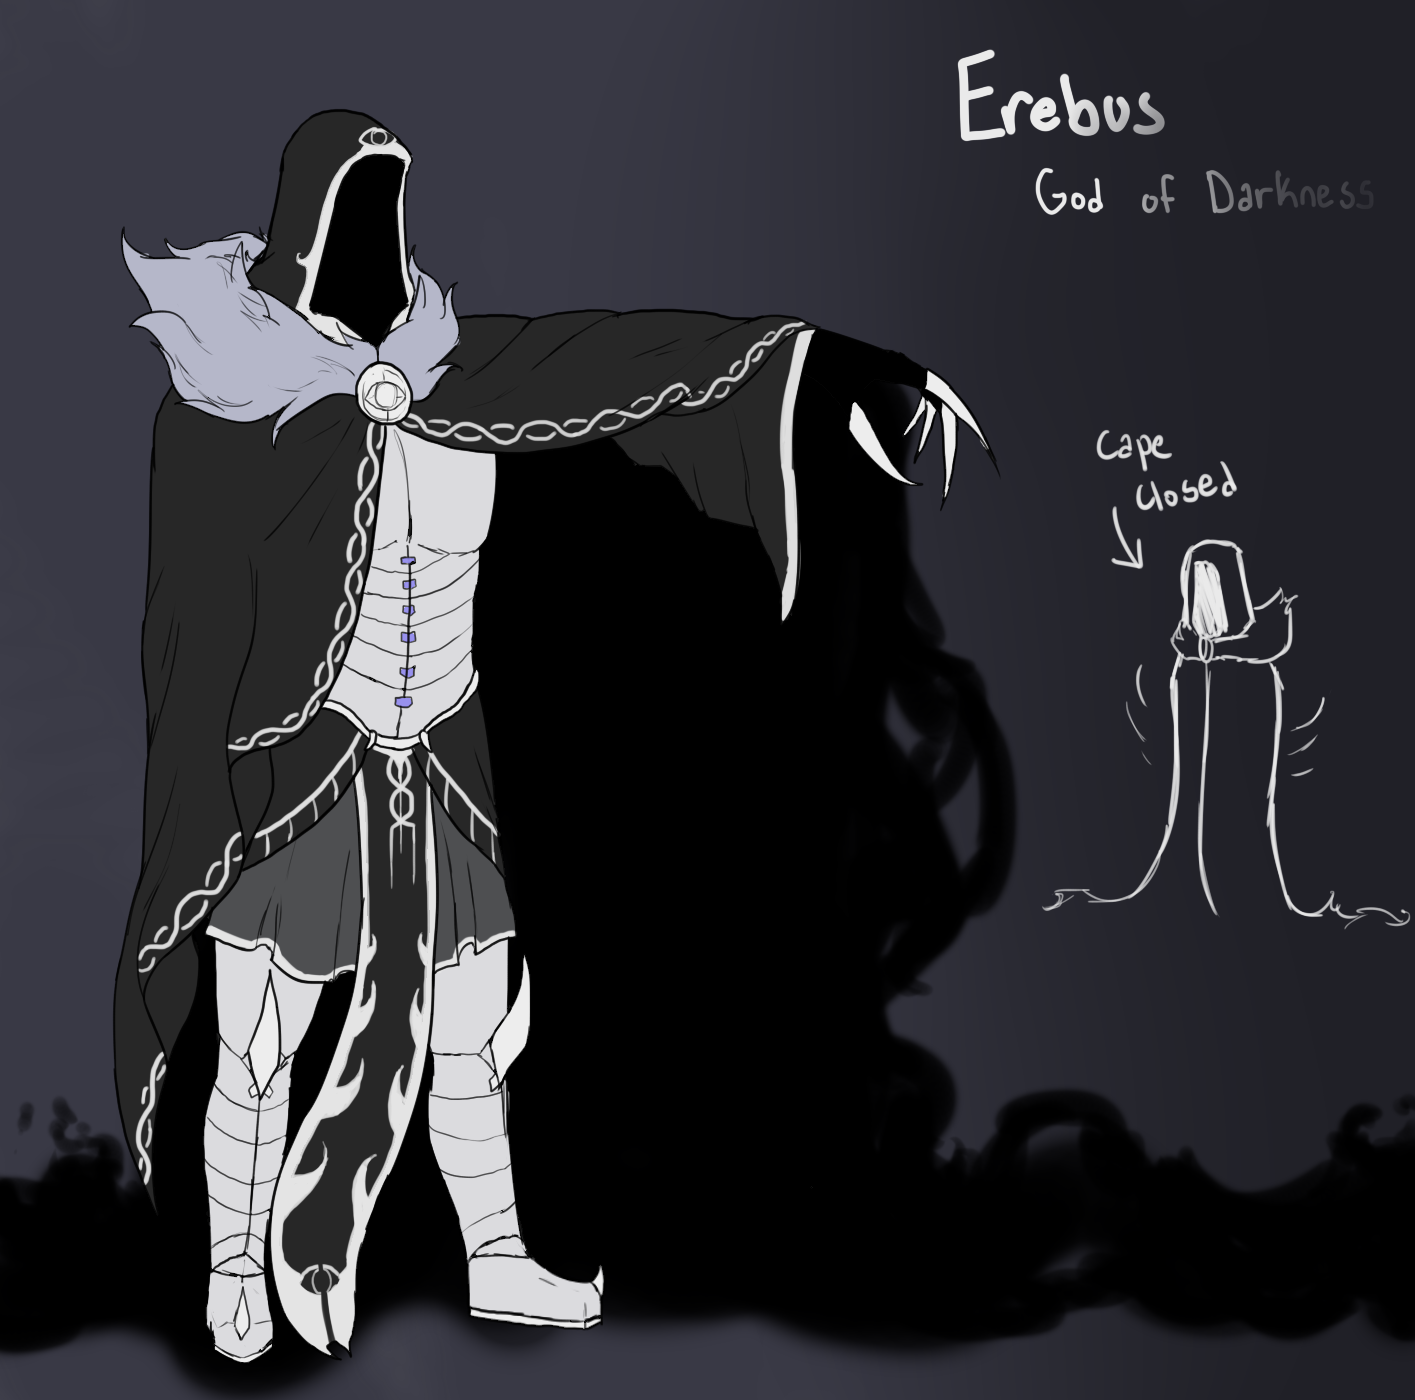 erebus god of darkness symbol - photo #3